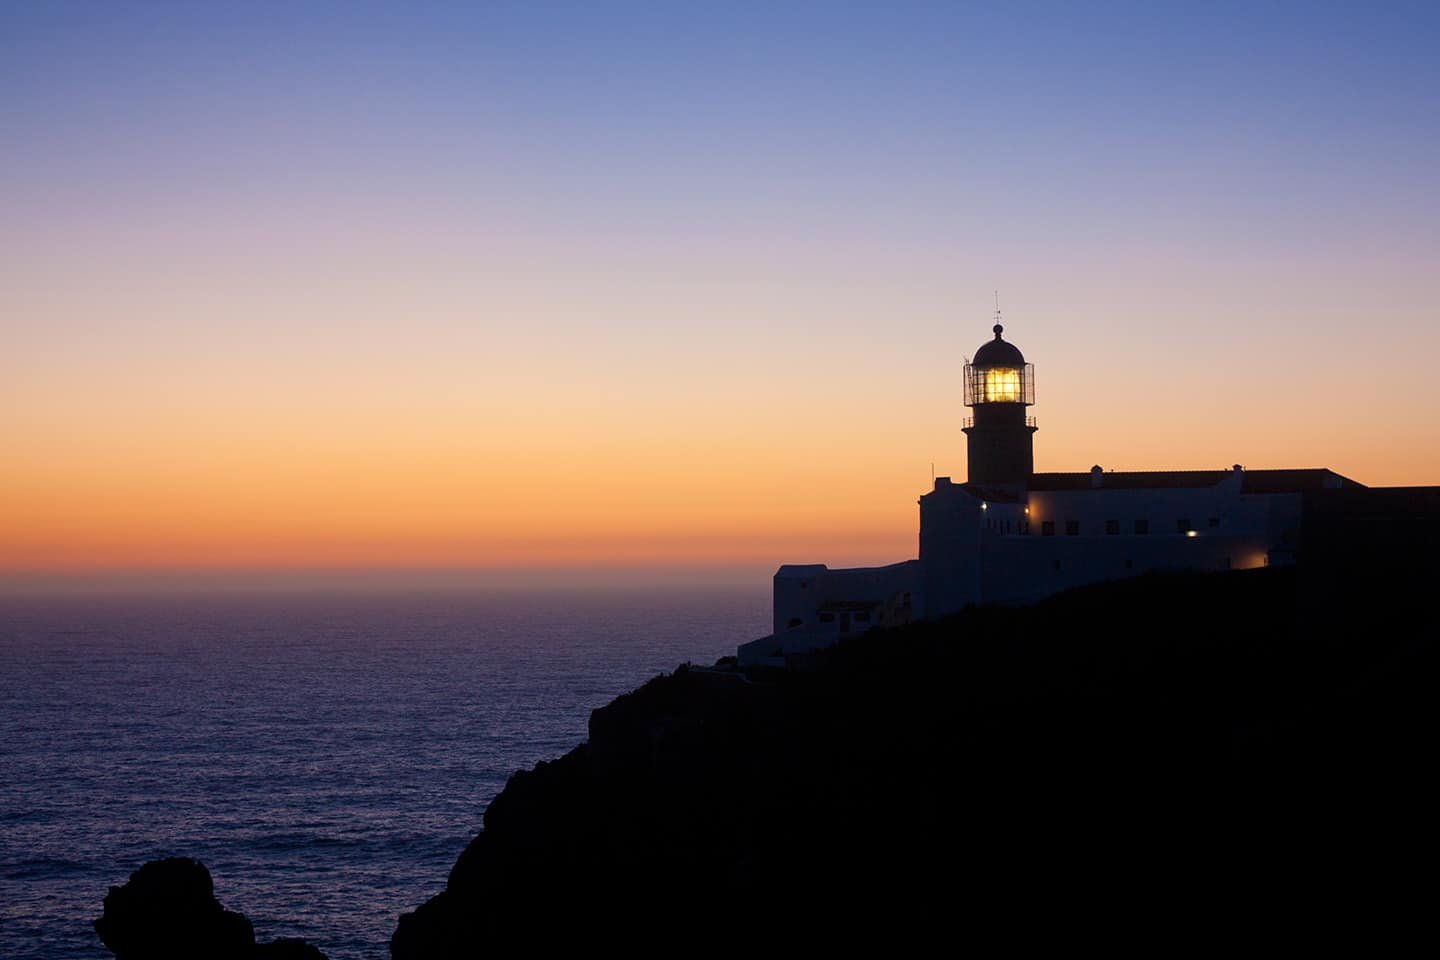 Costa Vicentina Portugal Image of Cape St Vincent lighthouse Algarve Portugal